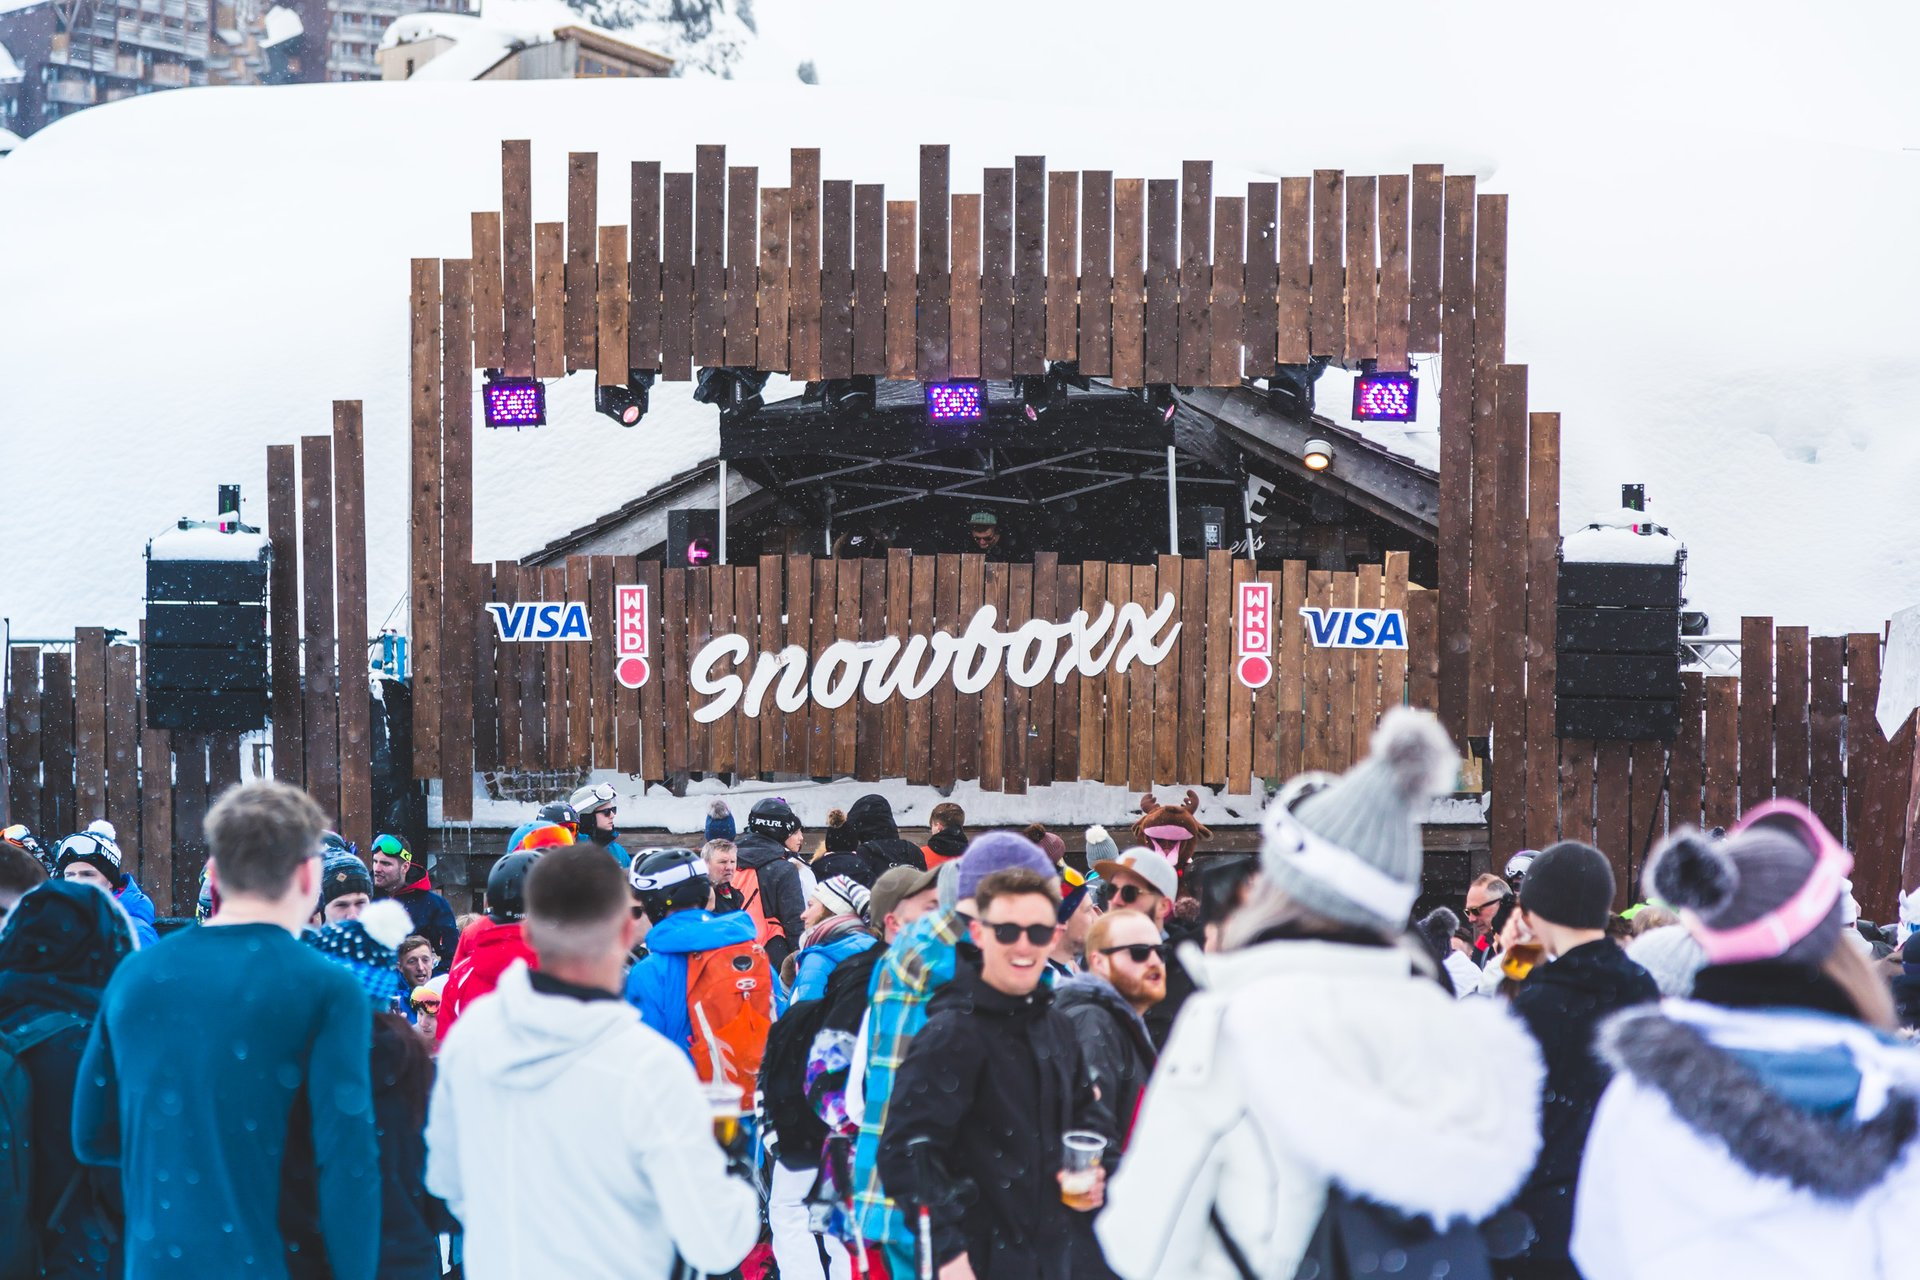 Best time to see Snowboxx in France 2020